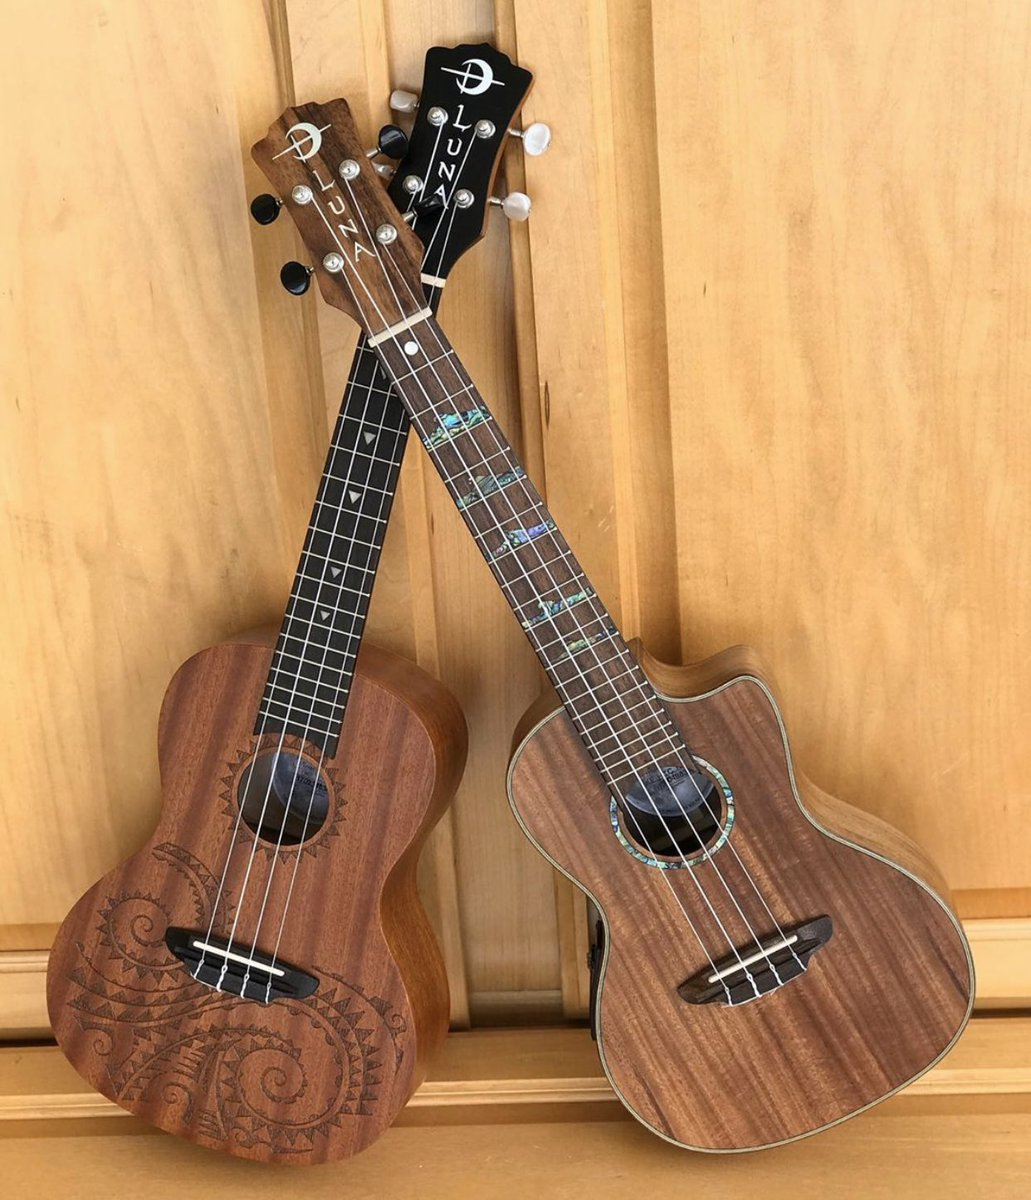 Poll: Which ukulele is your favorite!? Uke Tattoo Concert Mahogany or High Tide Concert Koa - Go!  #SundayFunday #LunaTribe #LunaUkes<br>http://pic.twitter.com/AUf4AizY9K